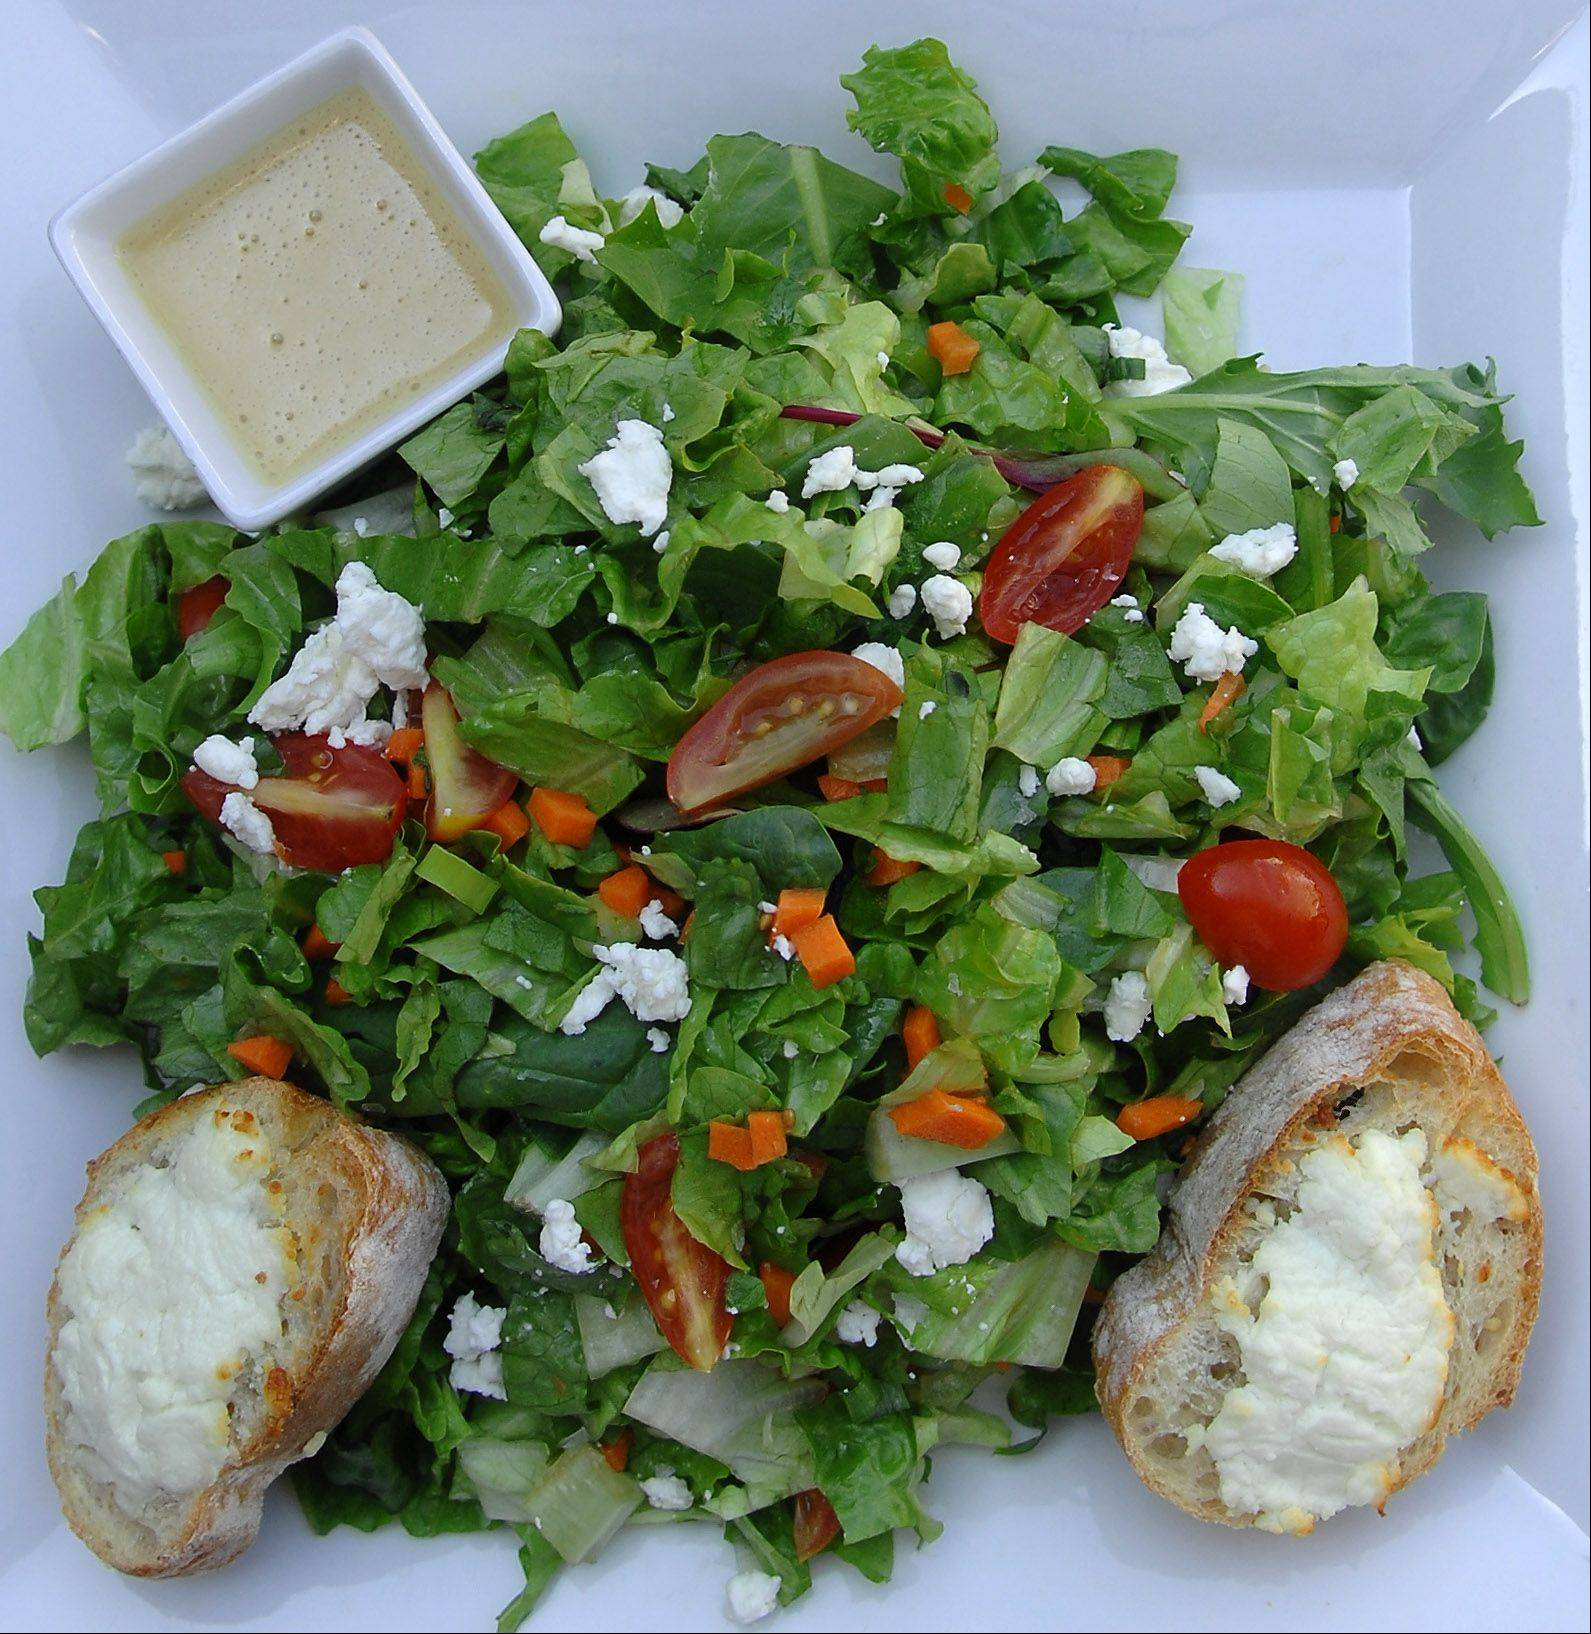 Chez Moi offers a warm goat cheese crostini salad on its lunch menu.